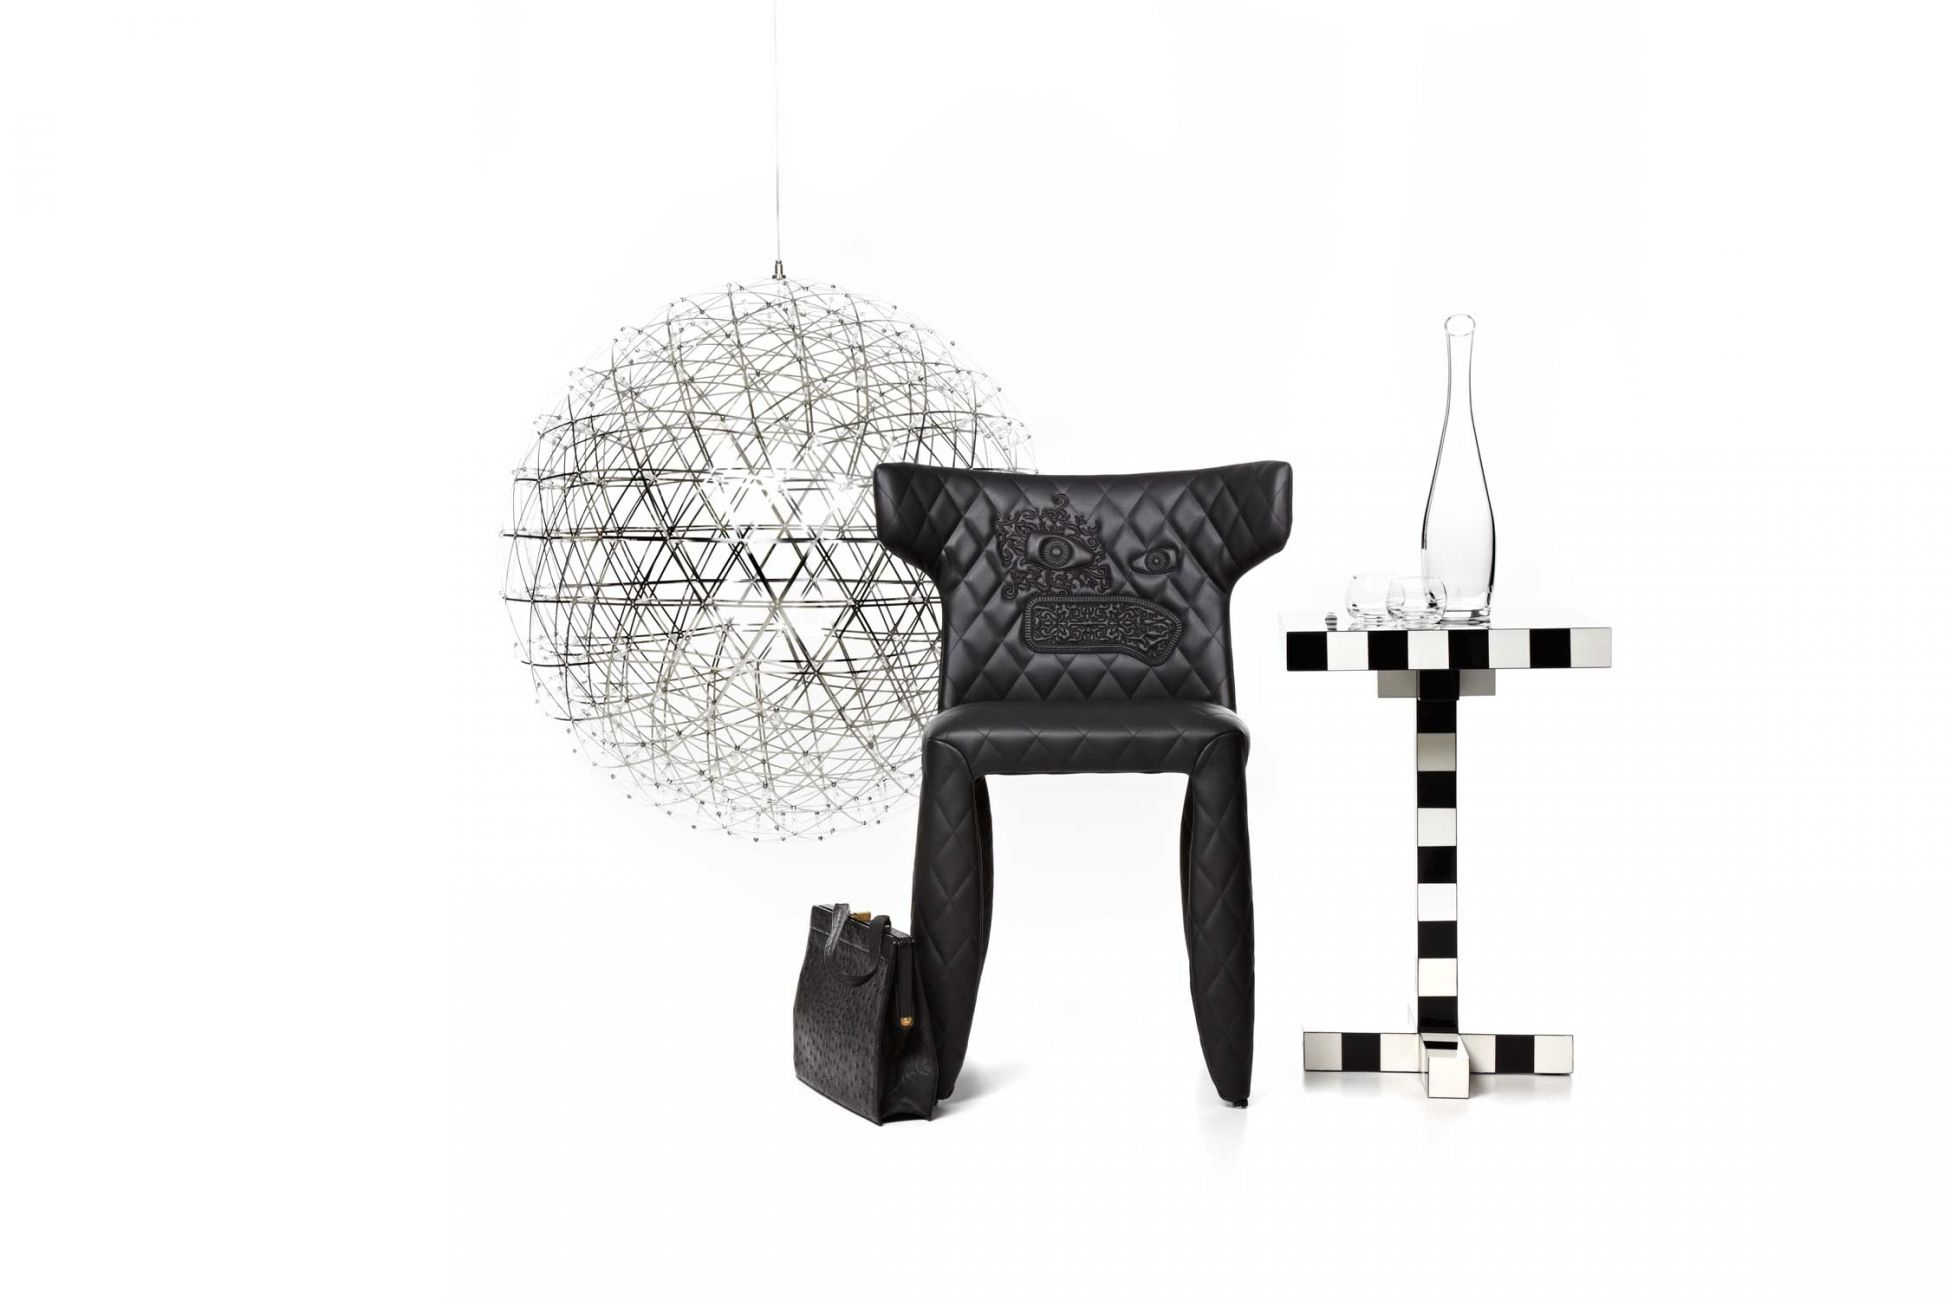 Some of Moooi's later products - The 'Raimond' LED pendant light (2007), the 'Monster' chair (2010) and the 'Chess' table (2009).